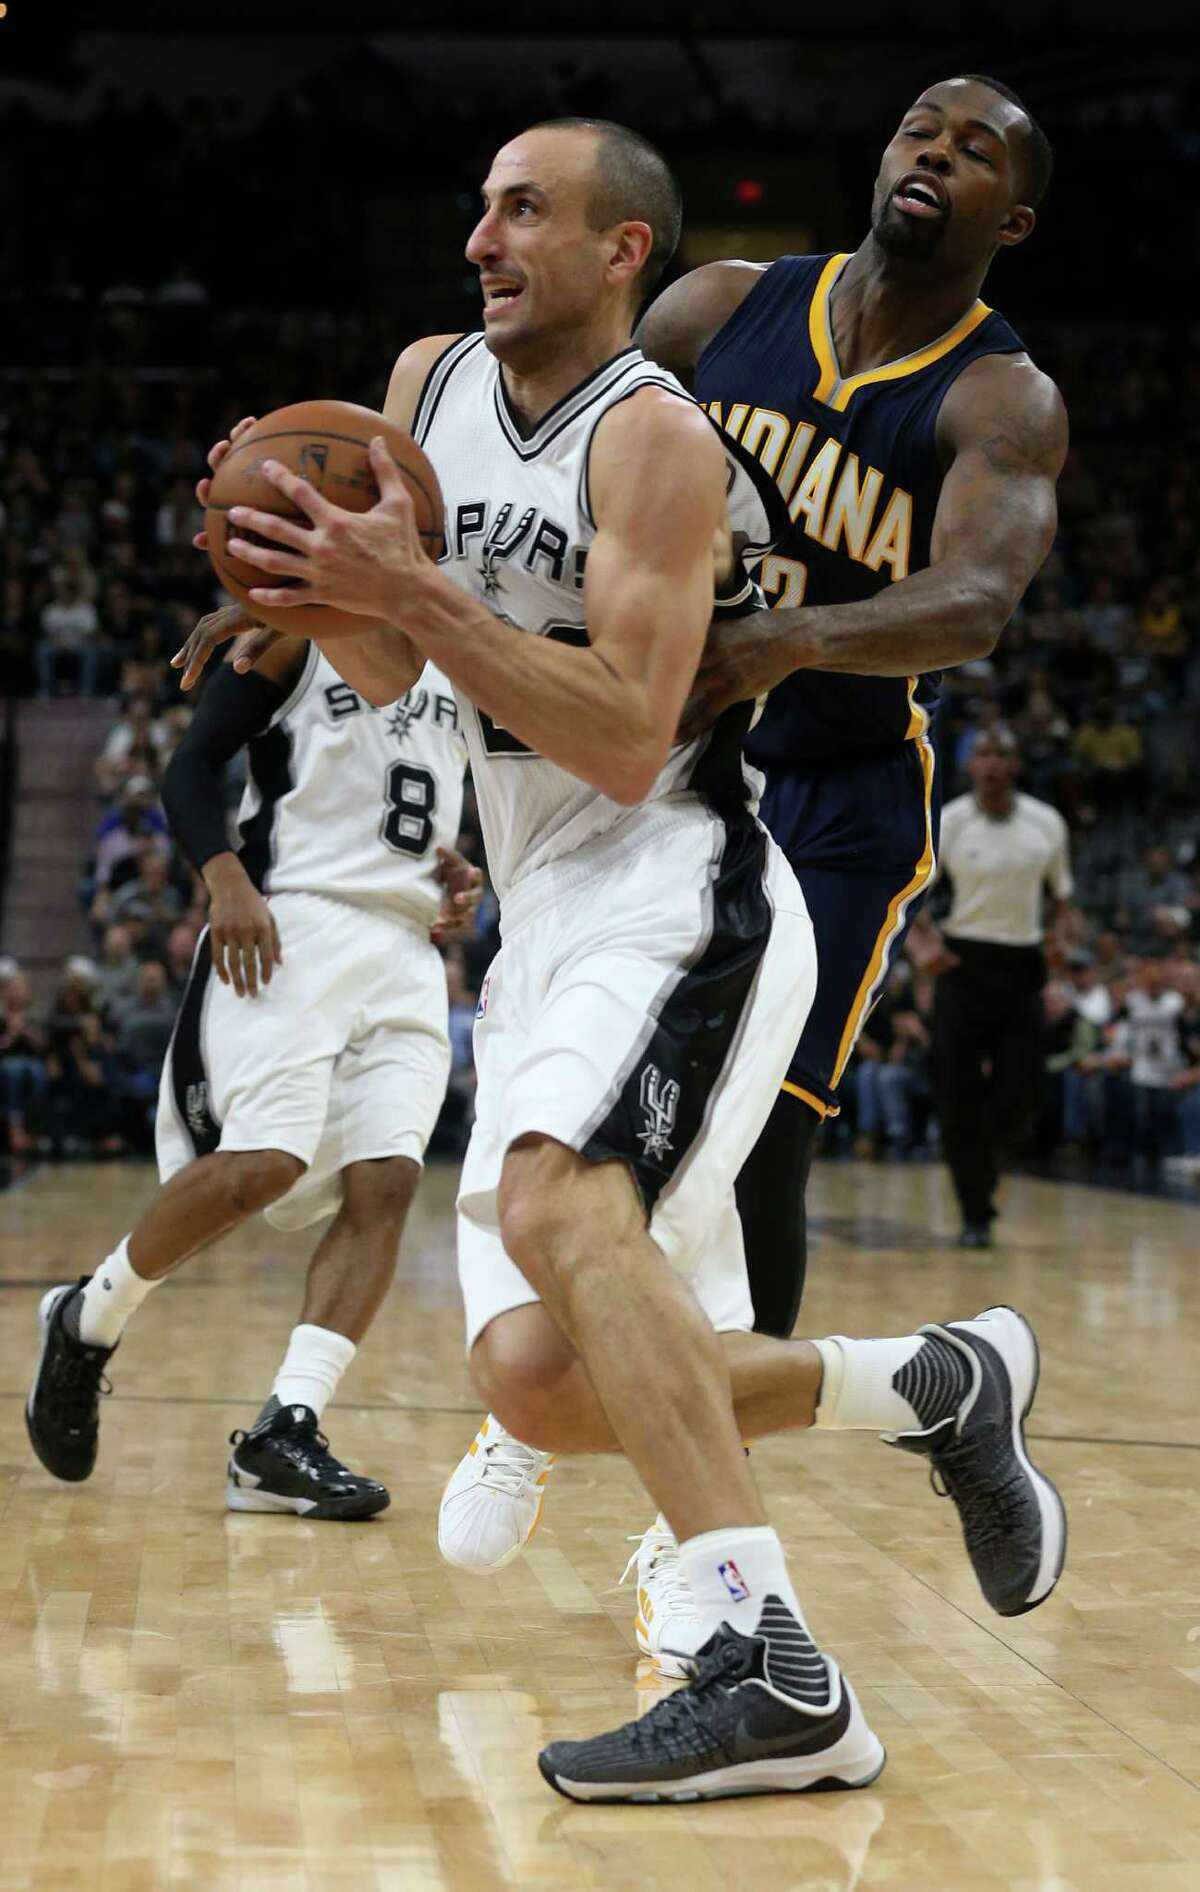 Indiana Pacers' Rodney Stuckey grabs the Spurs' Manu Ginobili during the second half at the AT&T Center on Dec. 21, 2015. The Spurs won, 106-92.